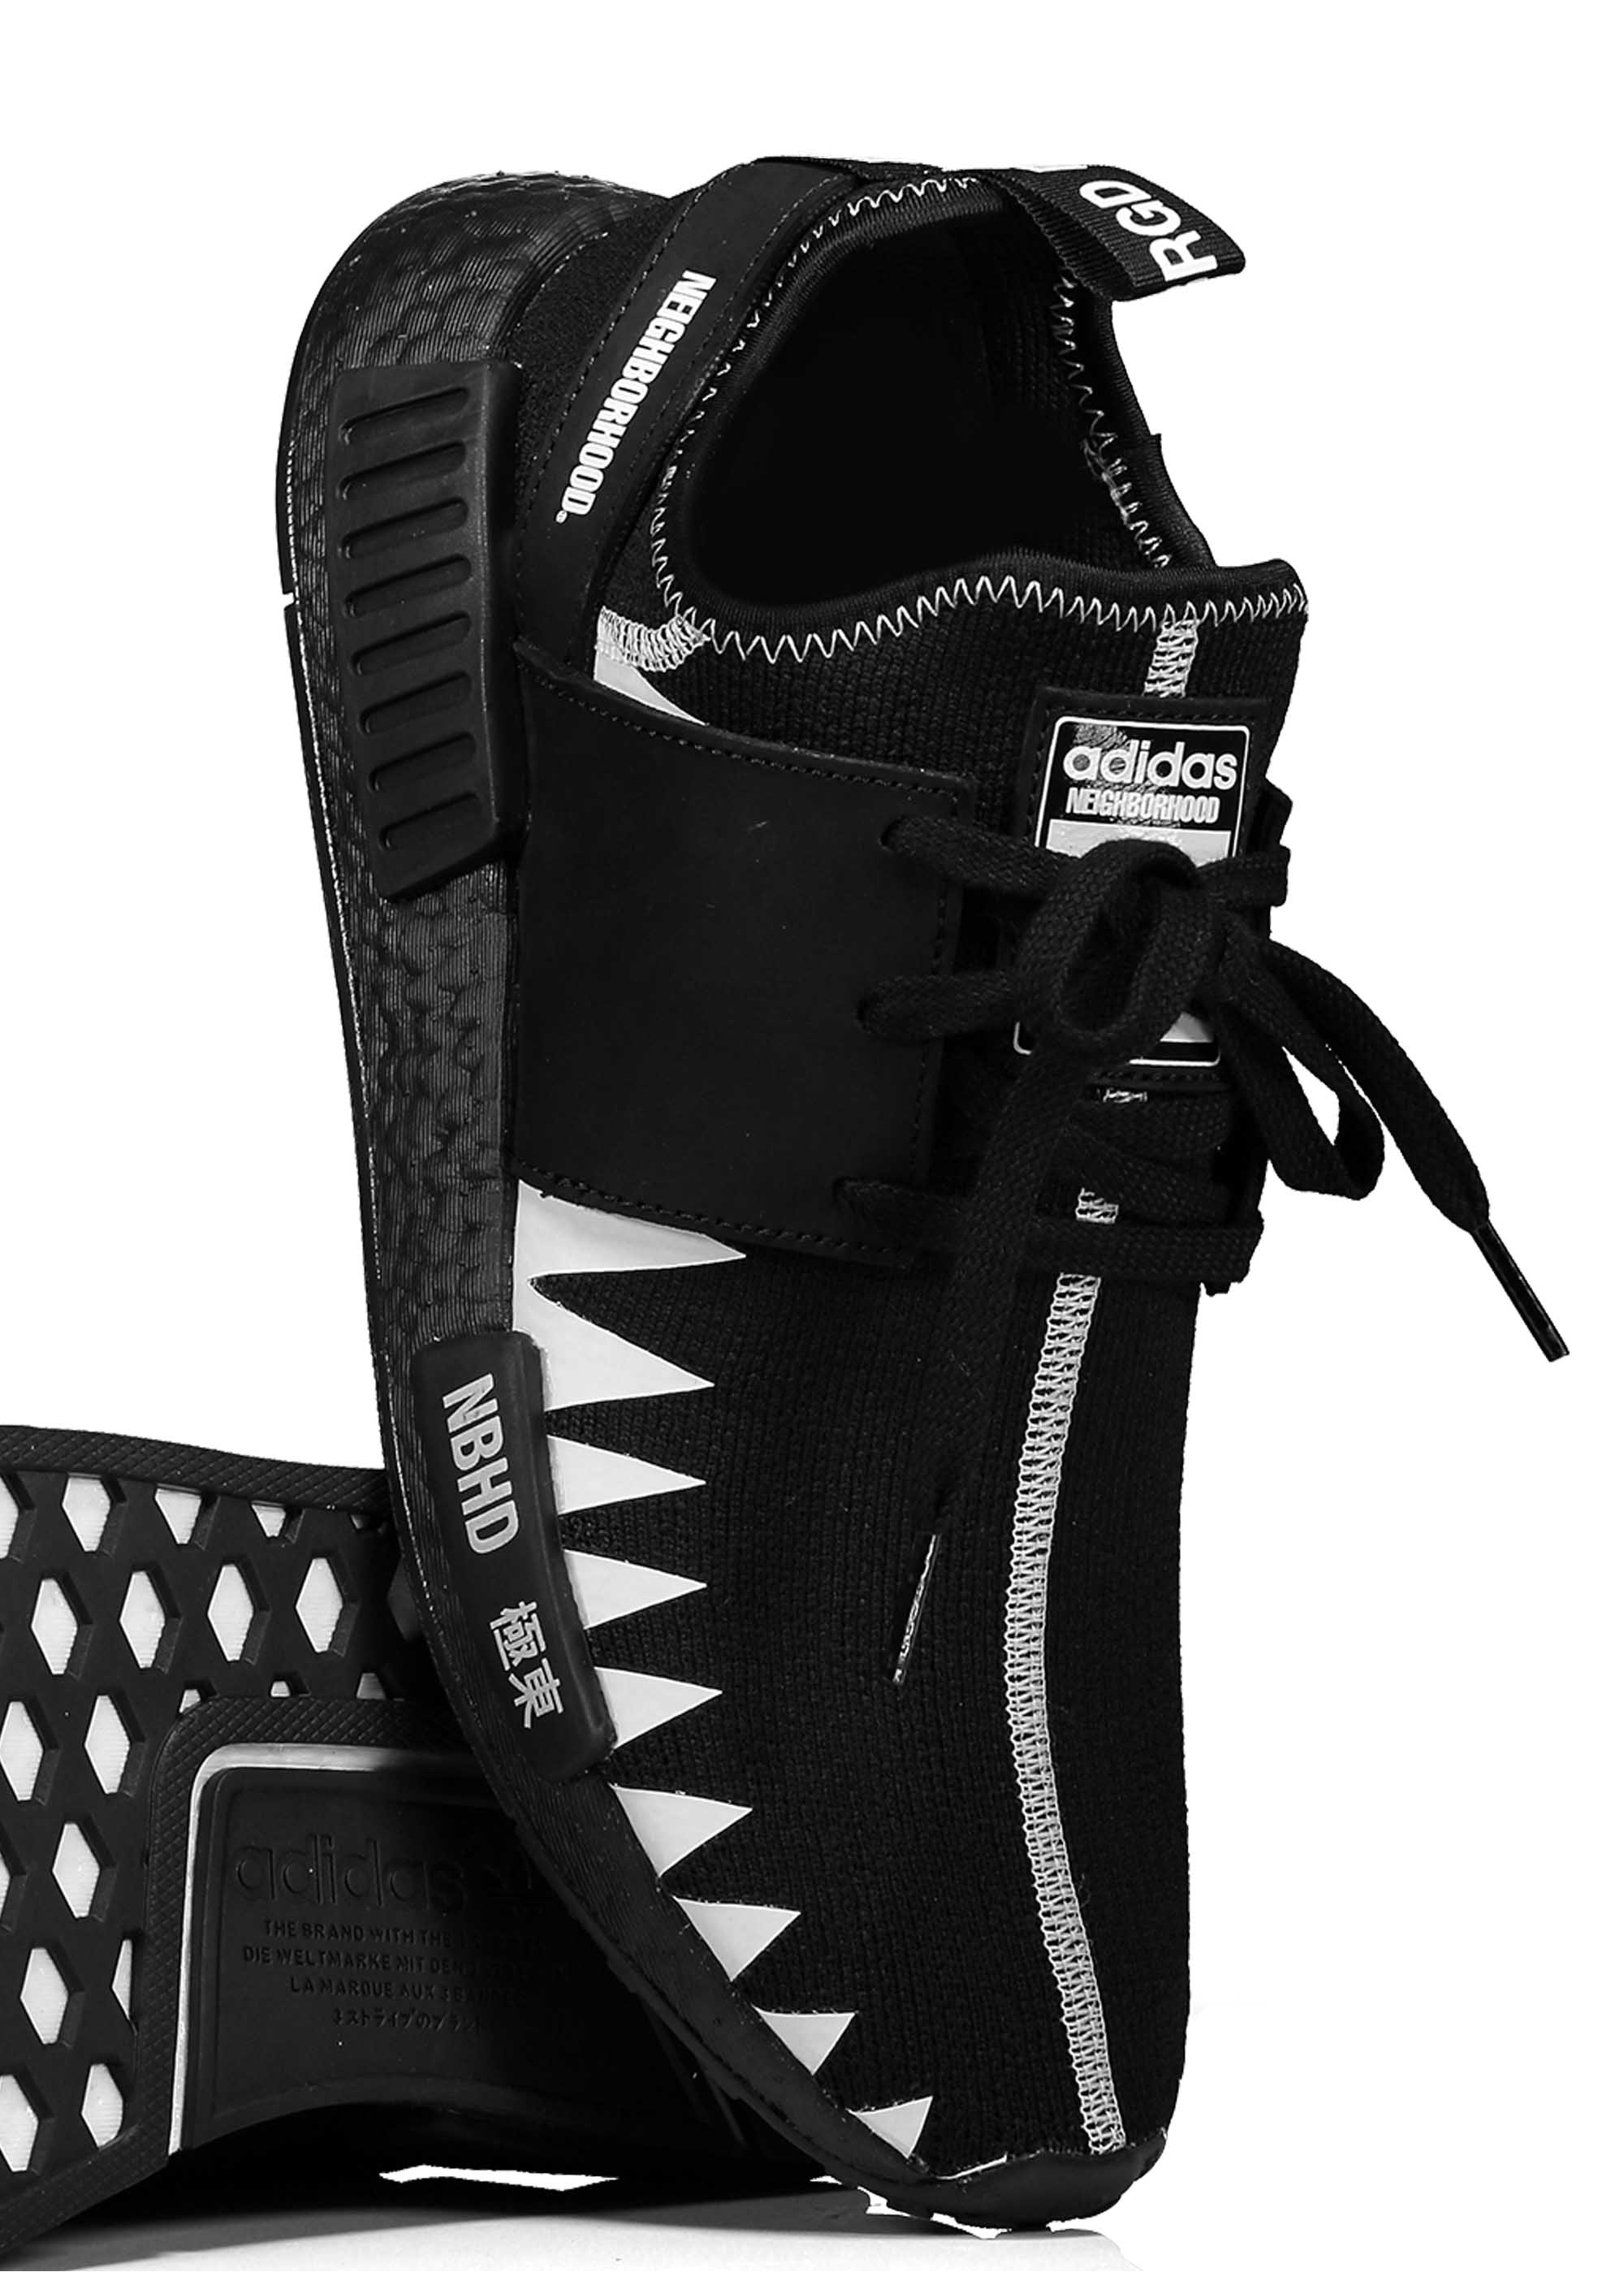 size 40 9dcc5 58940 adidas Originals Footwear x Neighborhood NMD R1 PK NBHD - Black